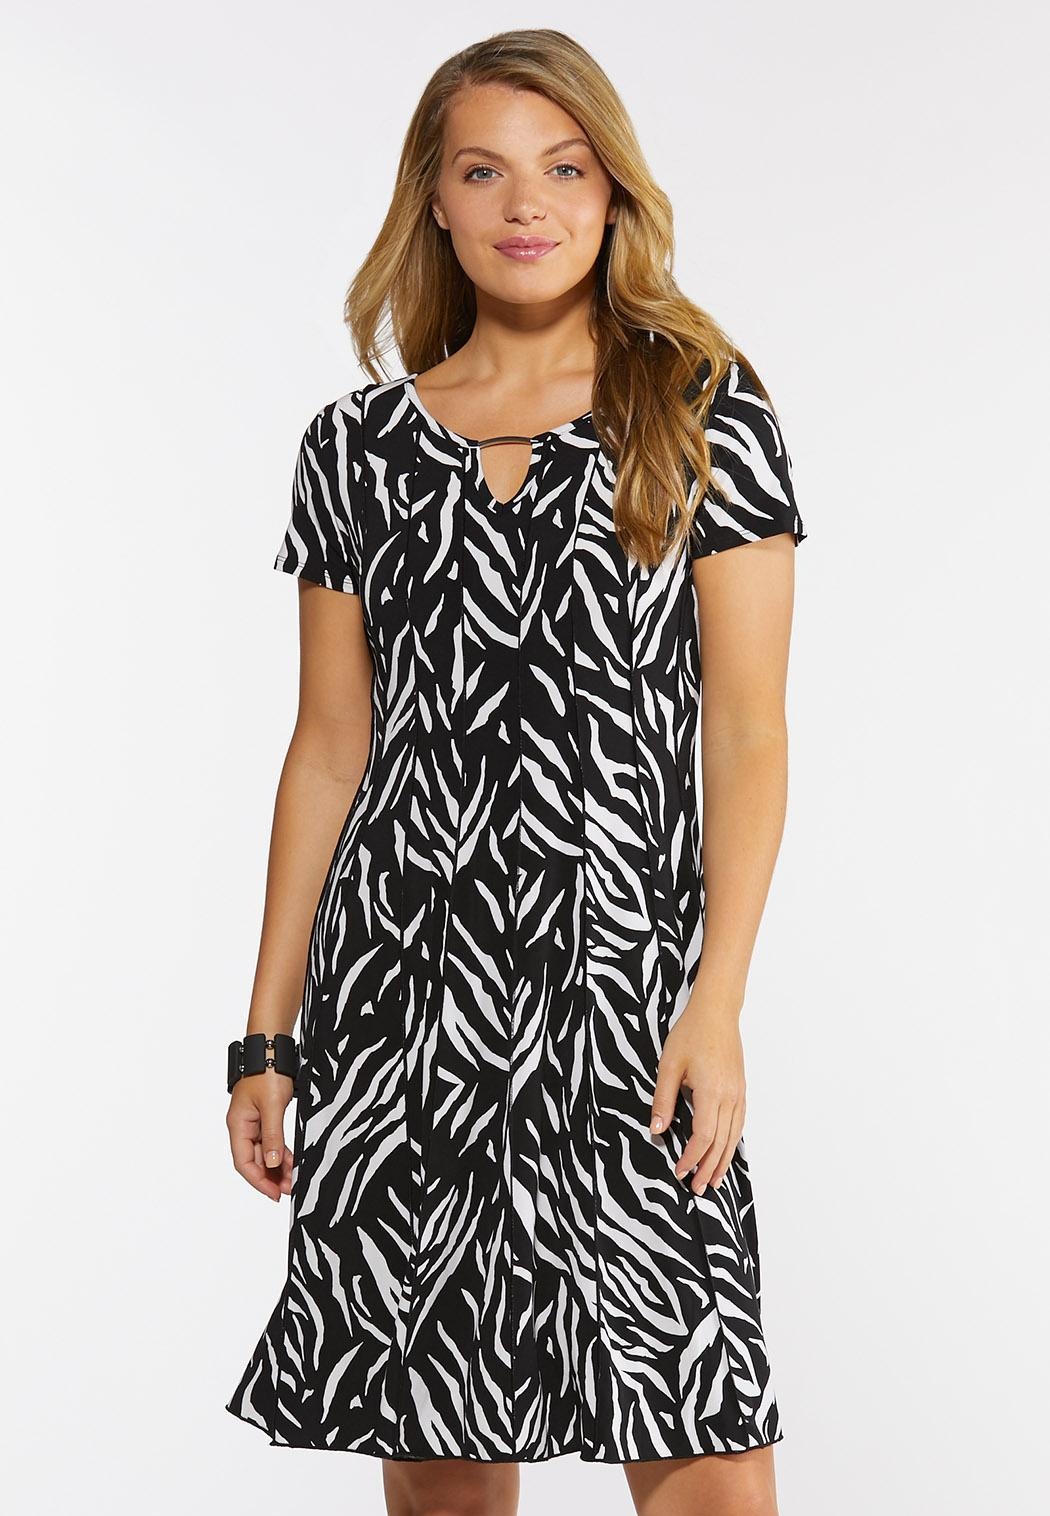 Embellished Zebra Print Dress